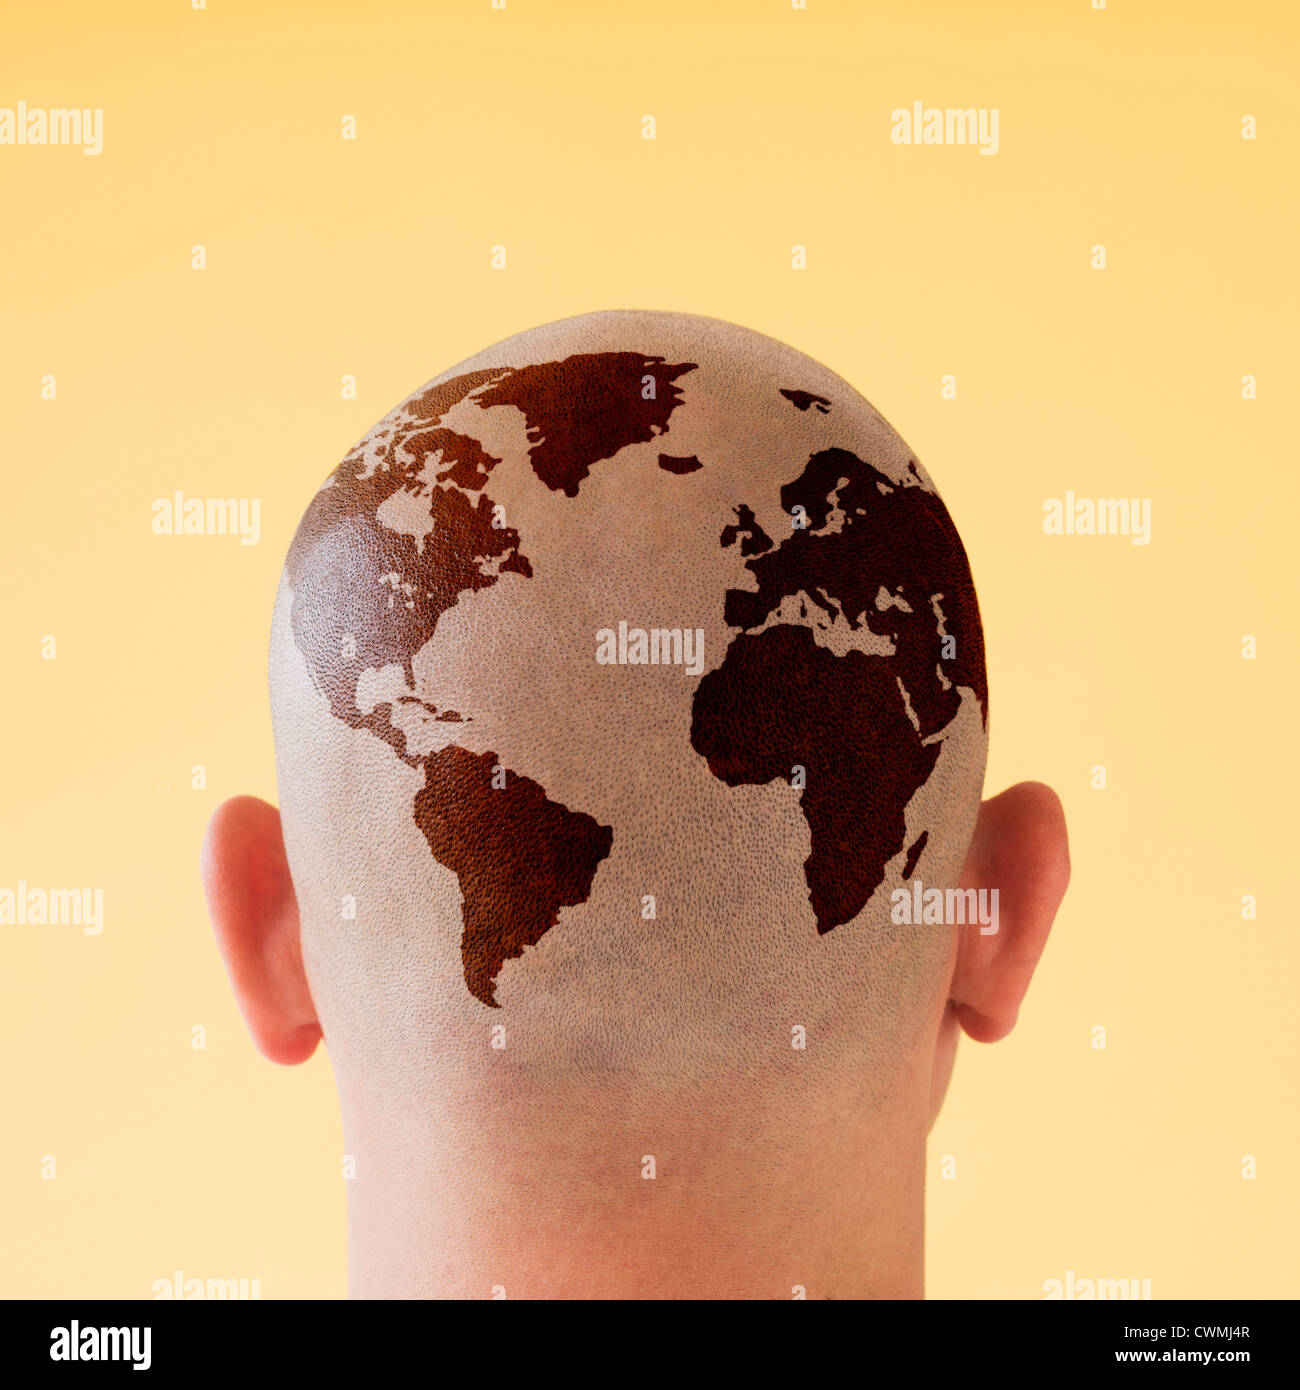 Map tattoo stock photos map tattoo stock images alamy back view of man with world map on shaved head gumiabroncs Image collections